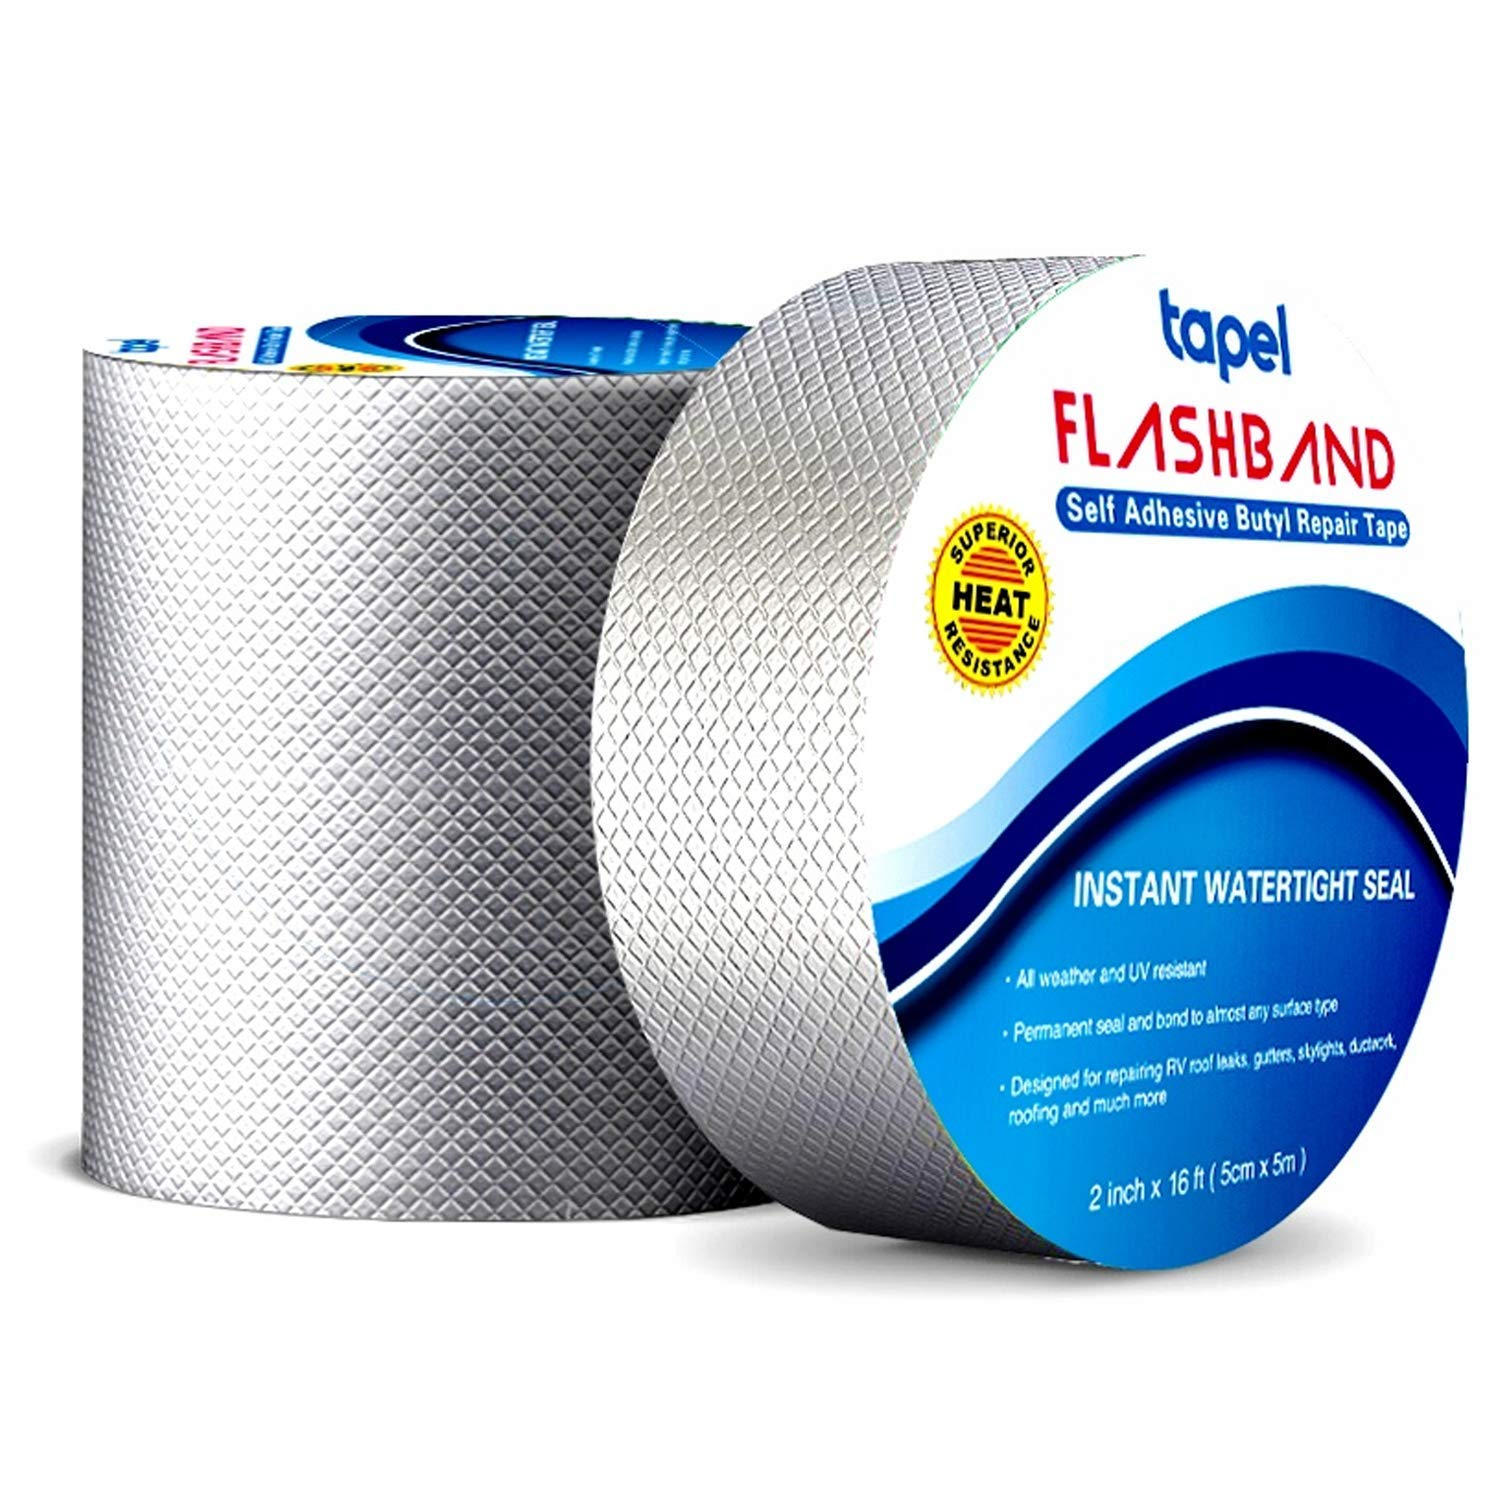 """Tapel Butyl Waterproof Tape - 2"""" X 16' - Leak Proof Long Lasting Watertight Rubber Putty Butyl Tape for RV Repair, Window, Silicone, and Boat Sealing, Glass & EDPM Rubber Roof Patching"""